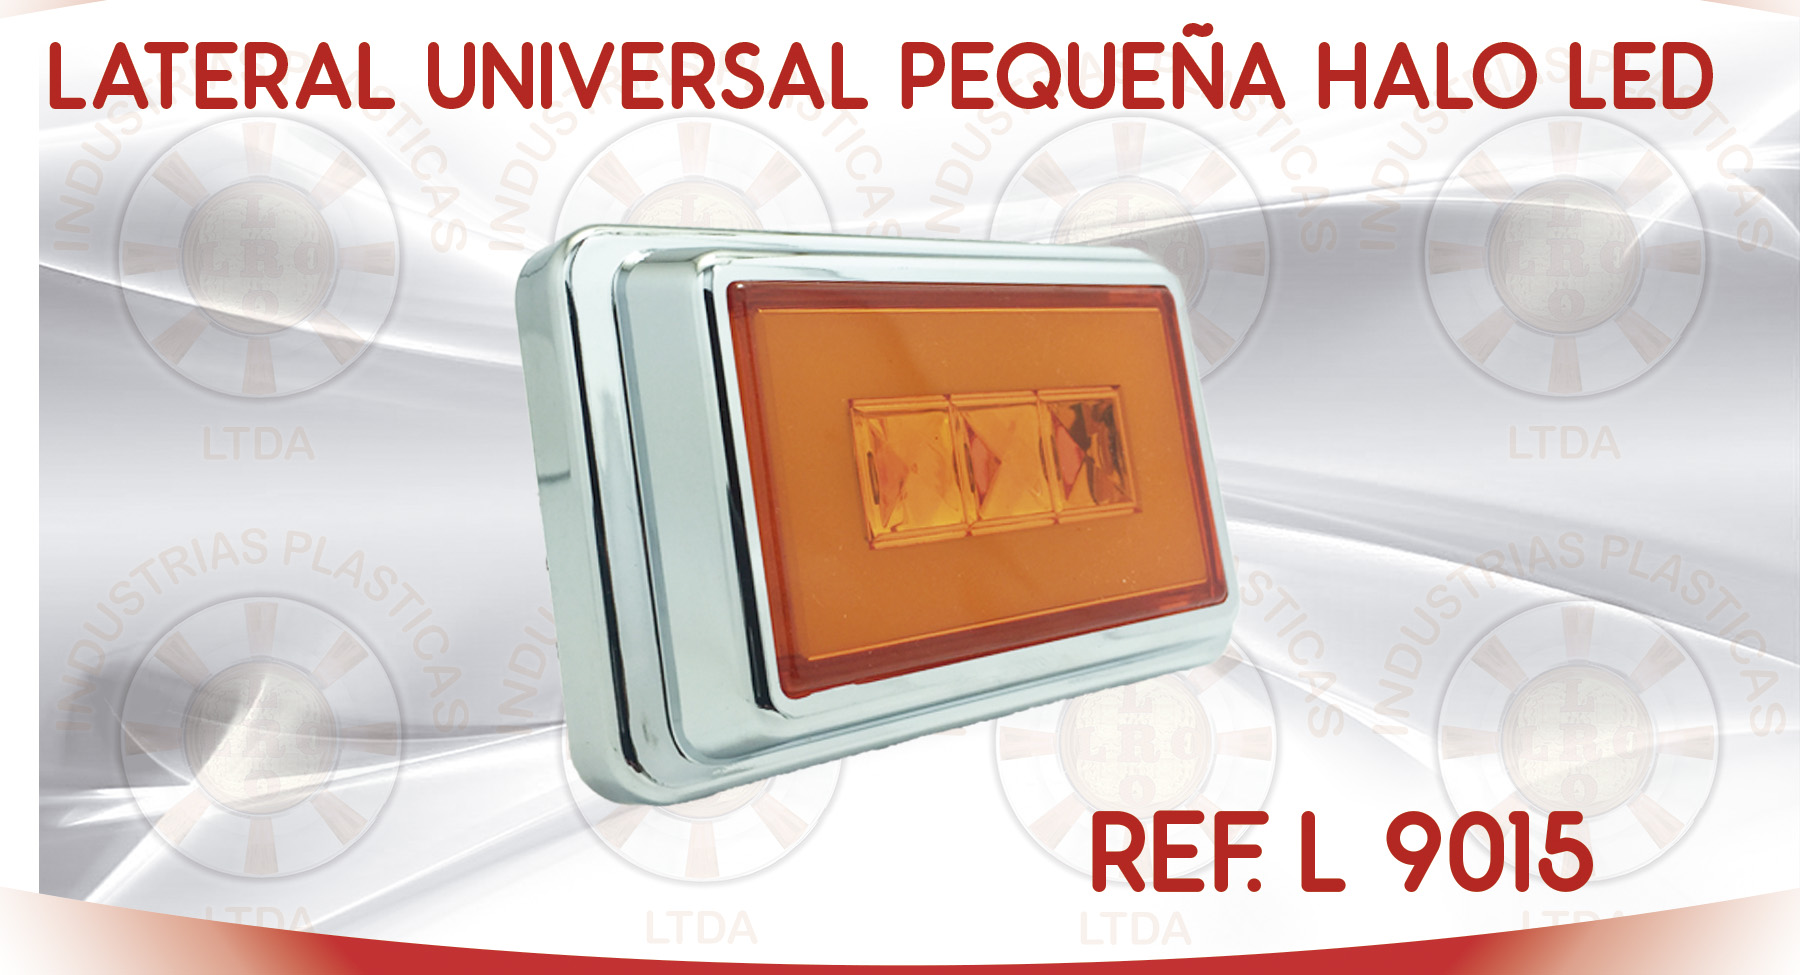 L 9015 LATERAL UNIVERSAL PEQUEÑA HALO LED